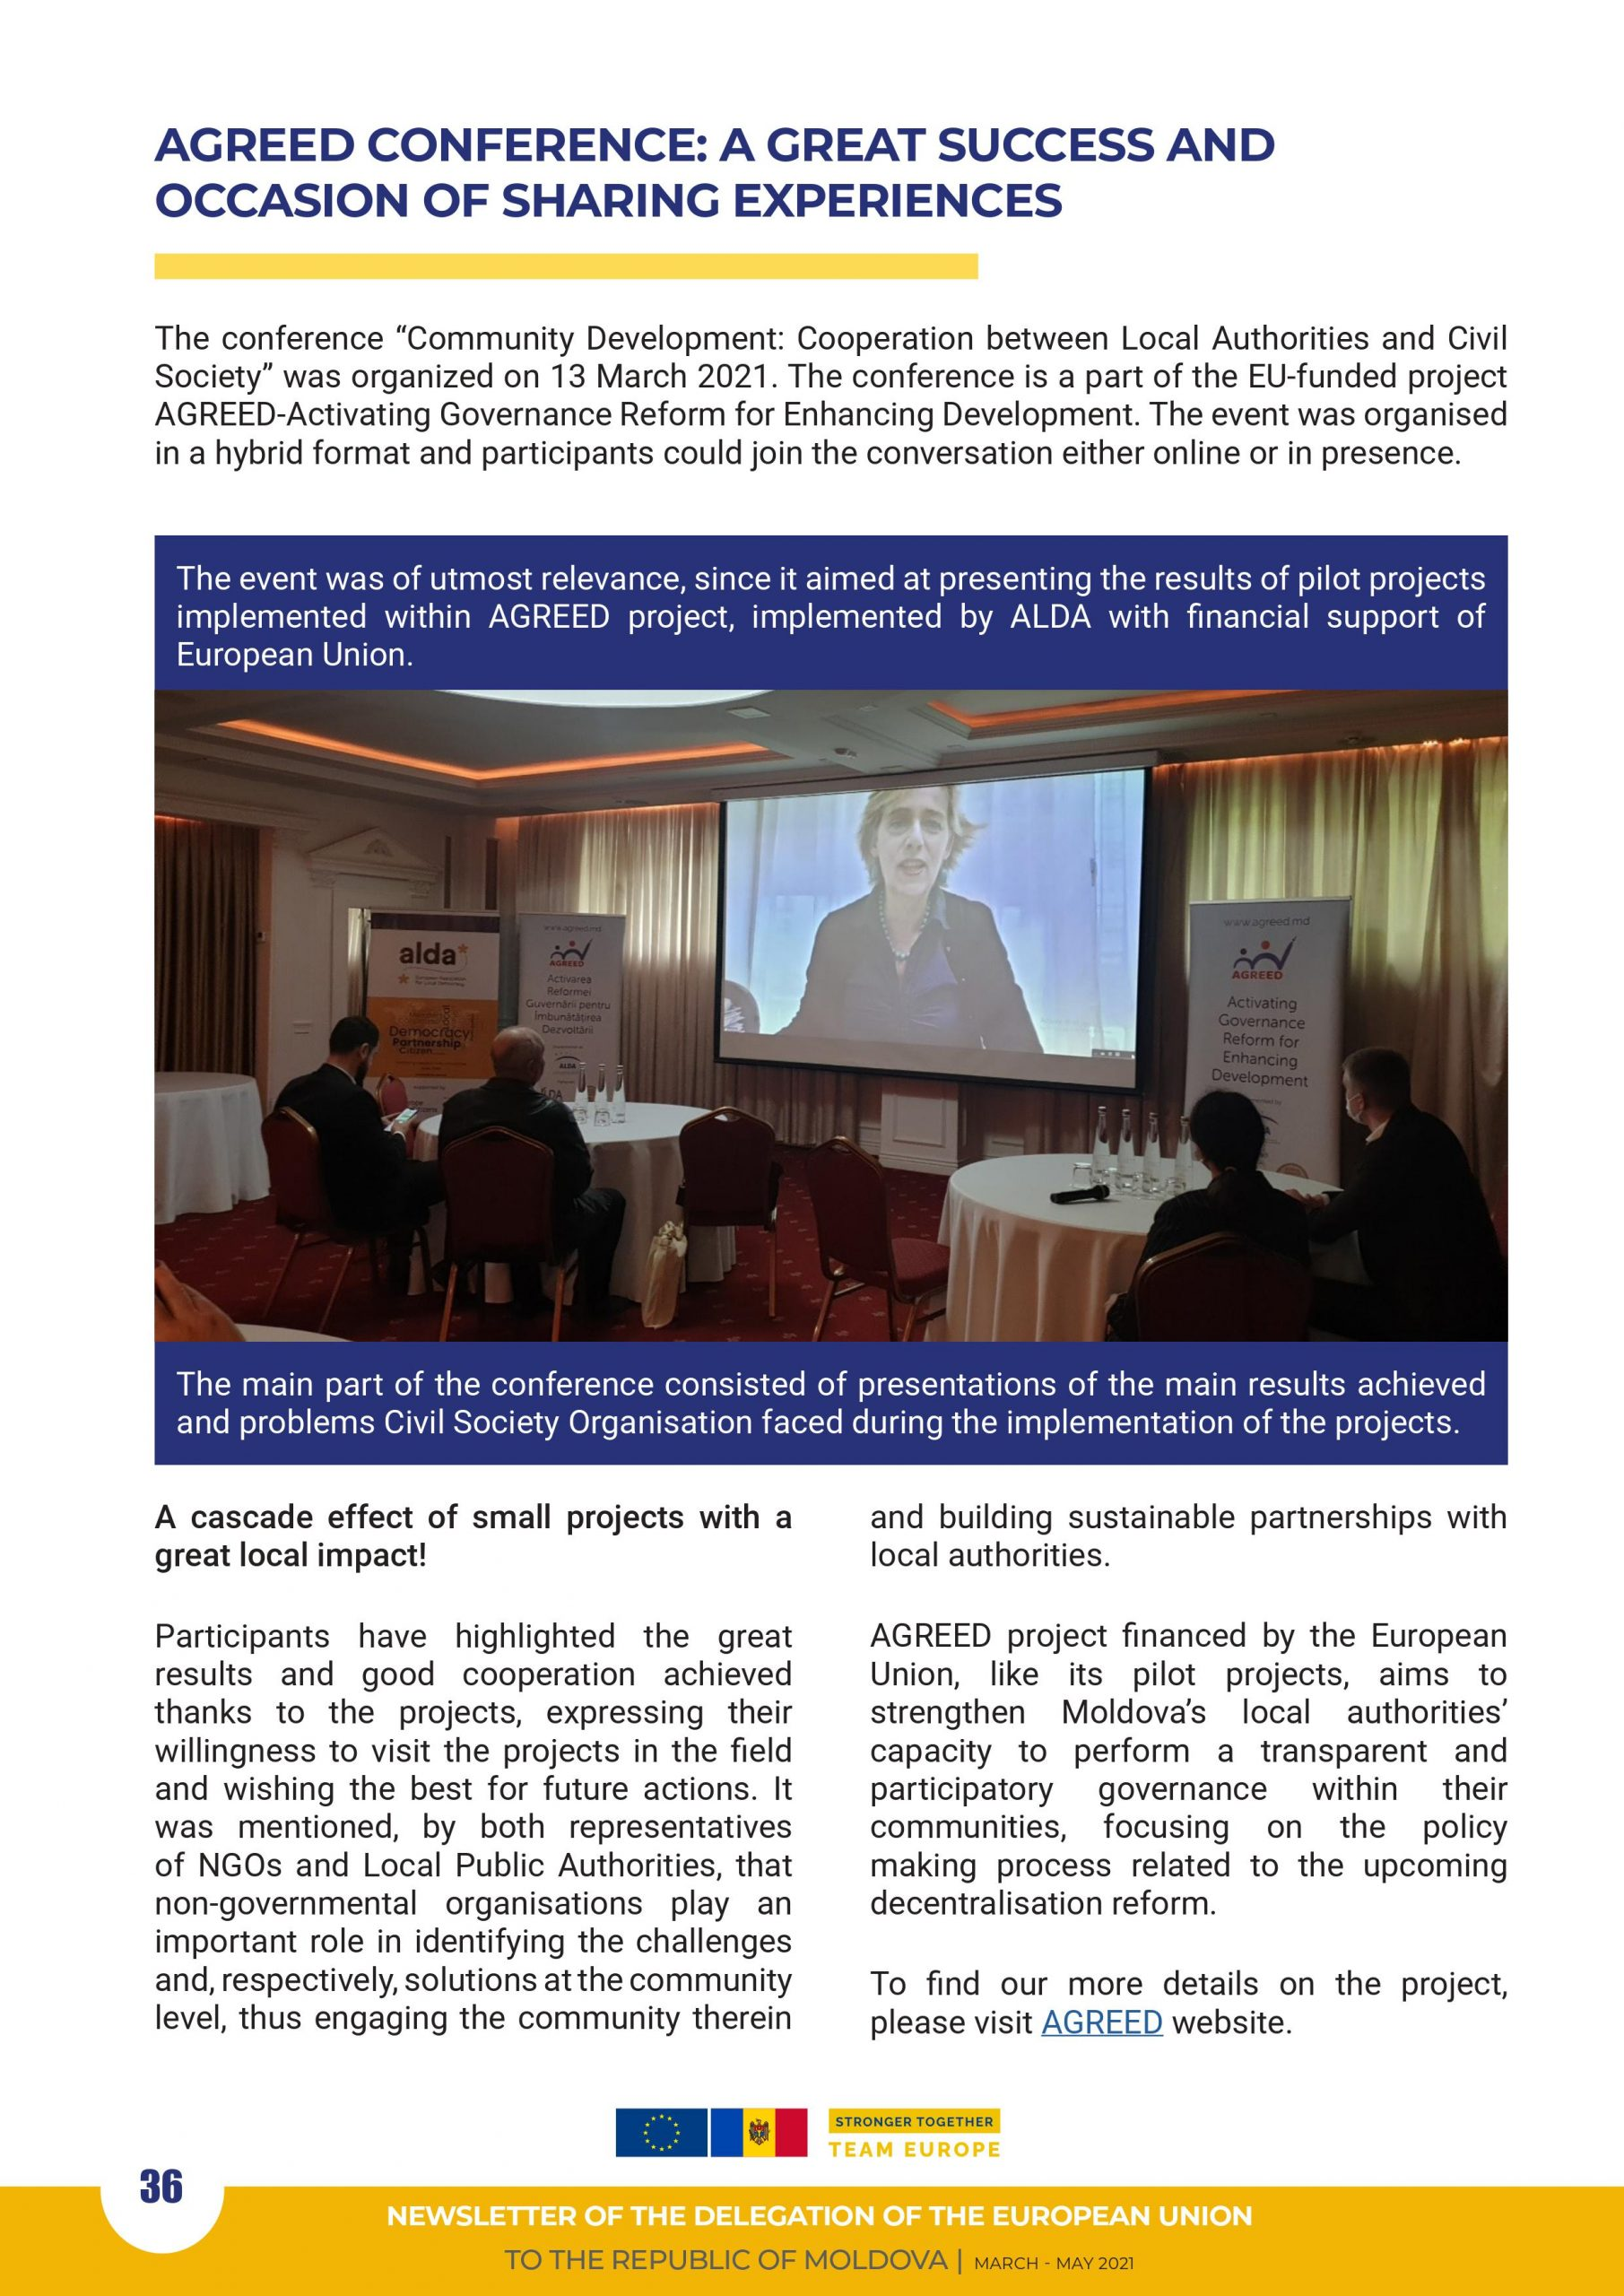 7th EU Newsletter – Evaluation Conference of Pilot Projects within AGREED